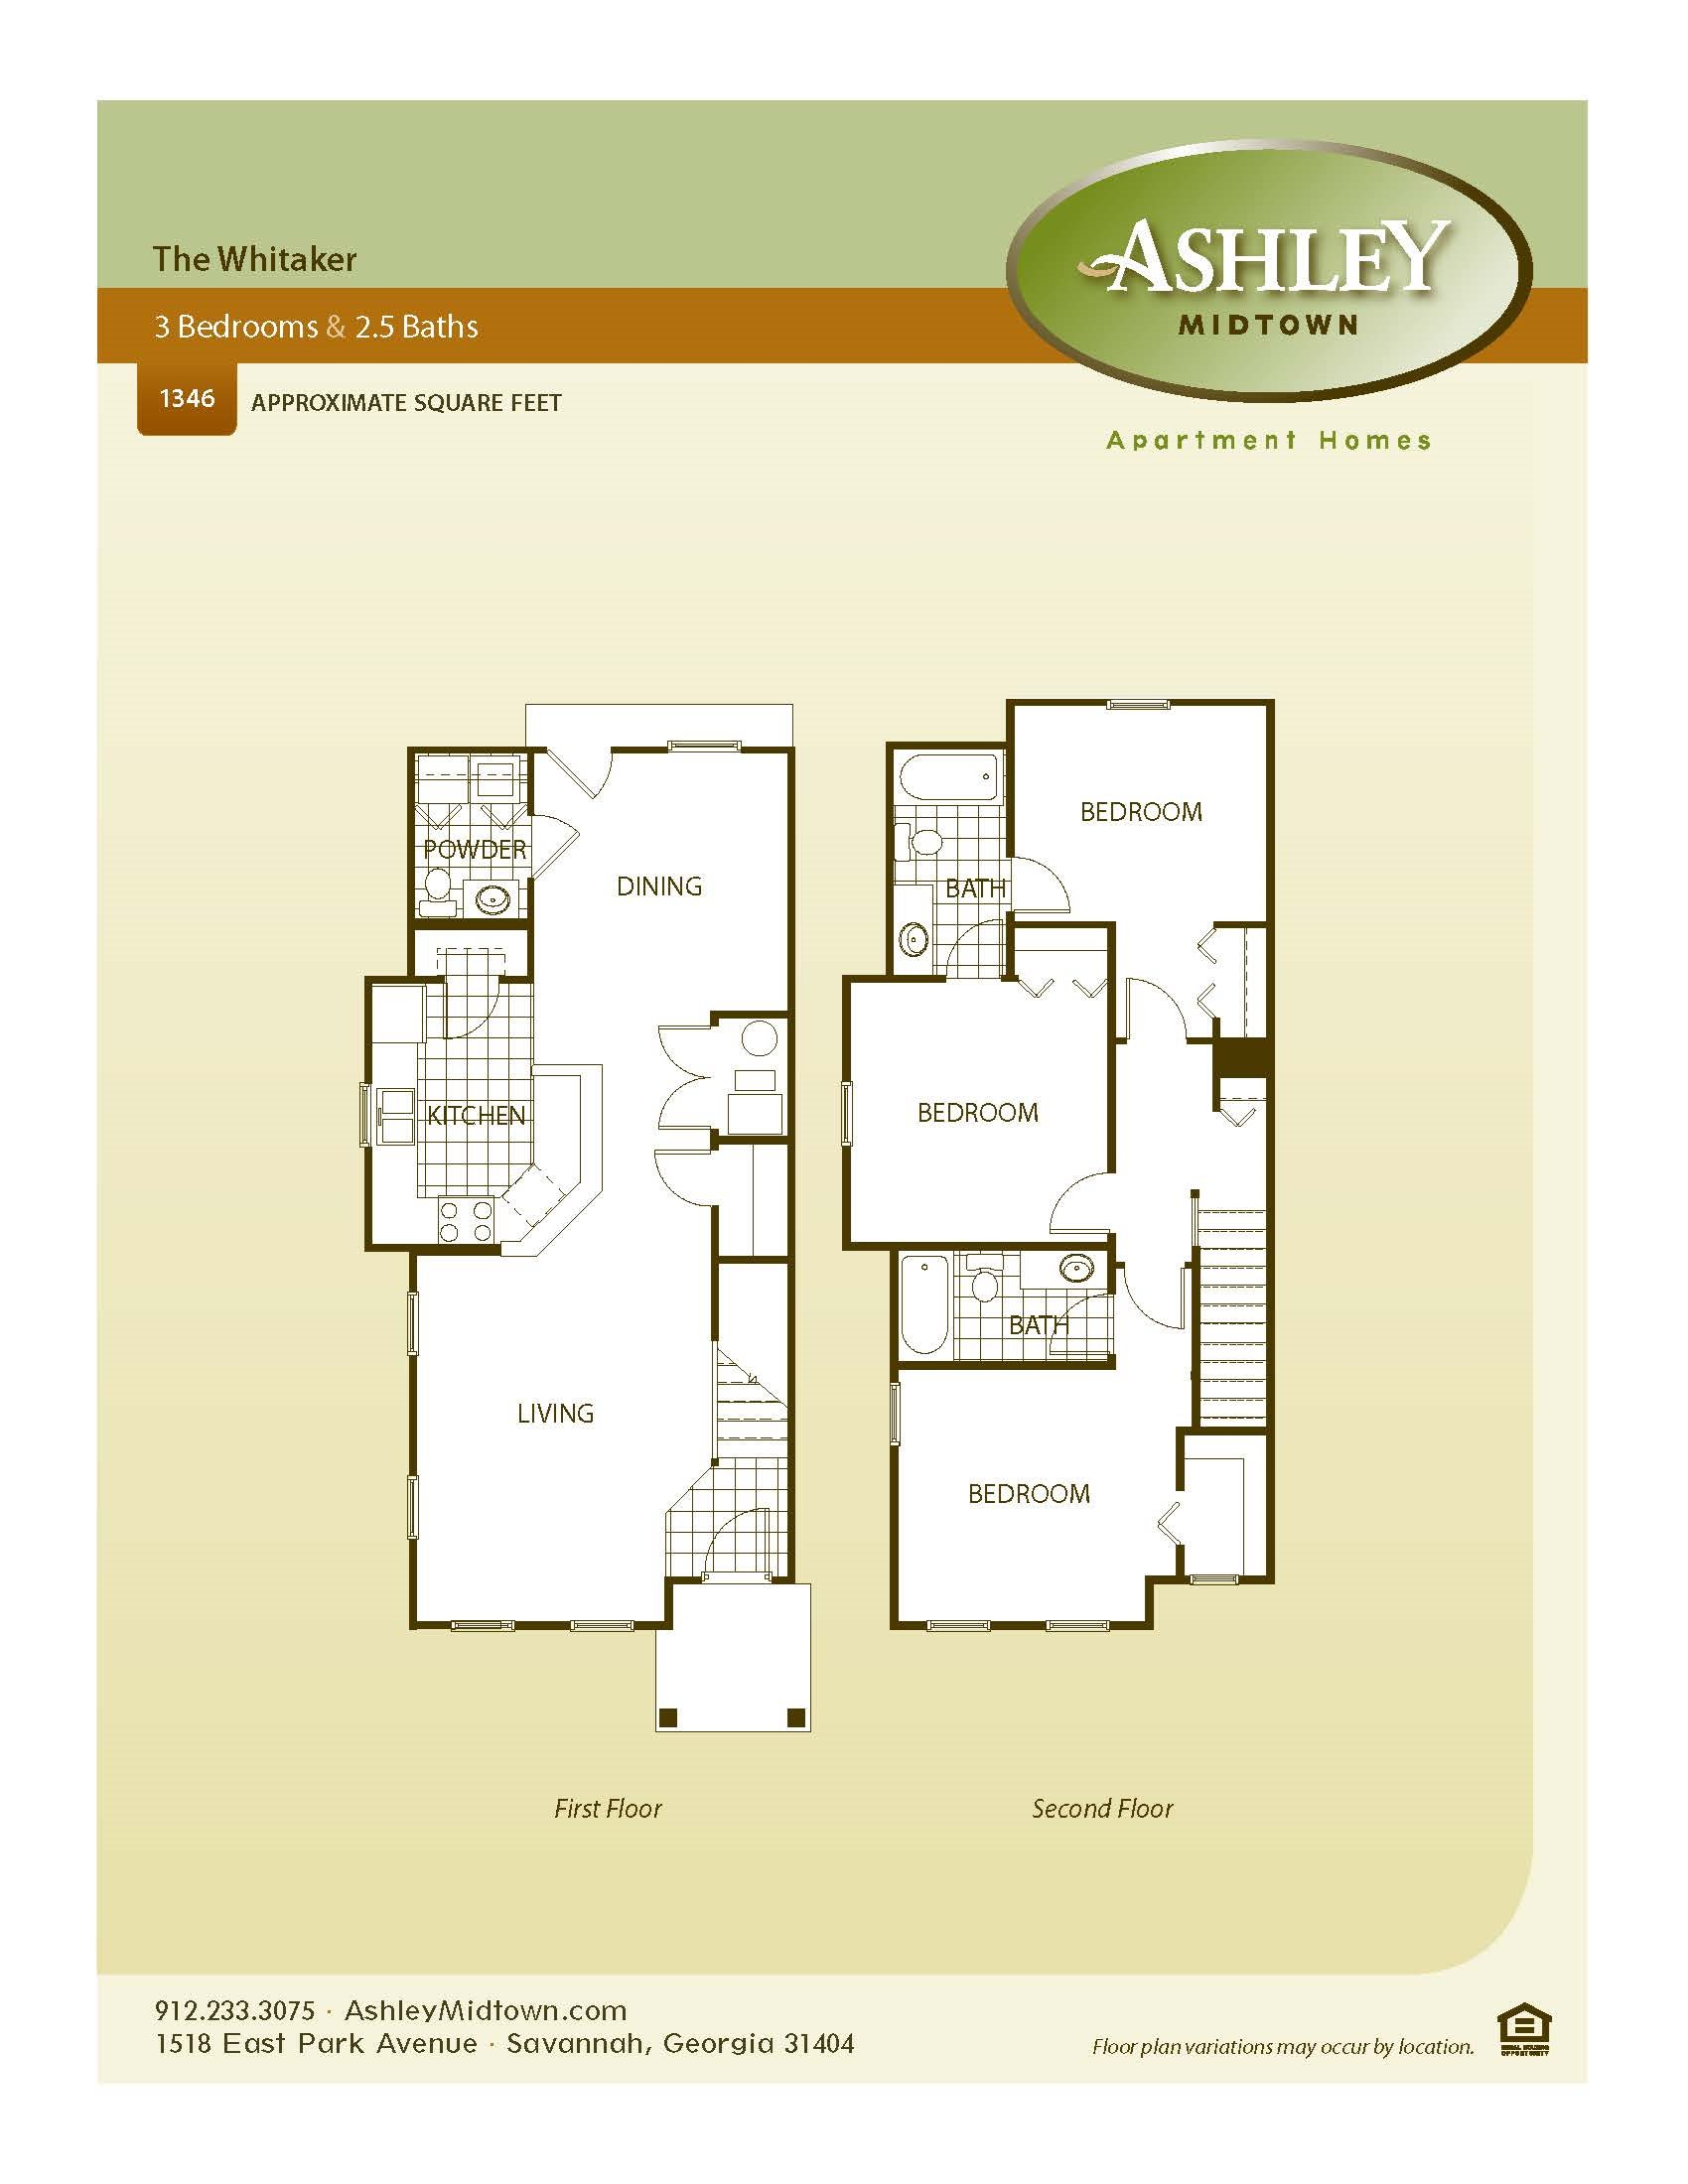 The Whitaker Floor Plan 5